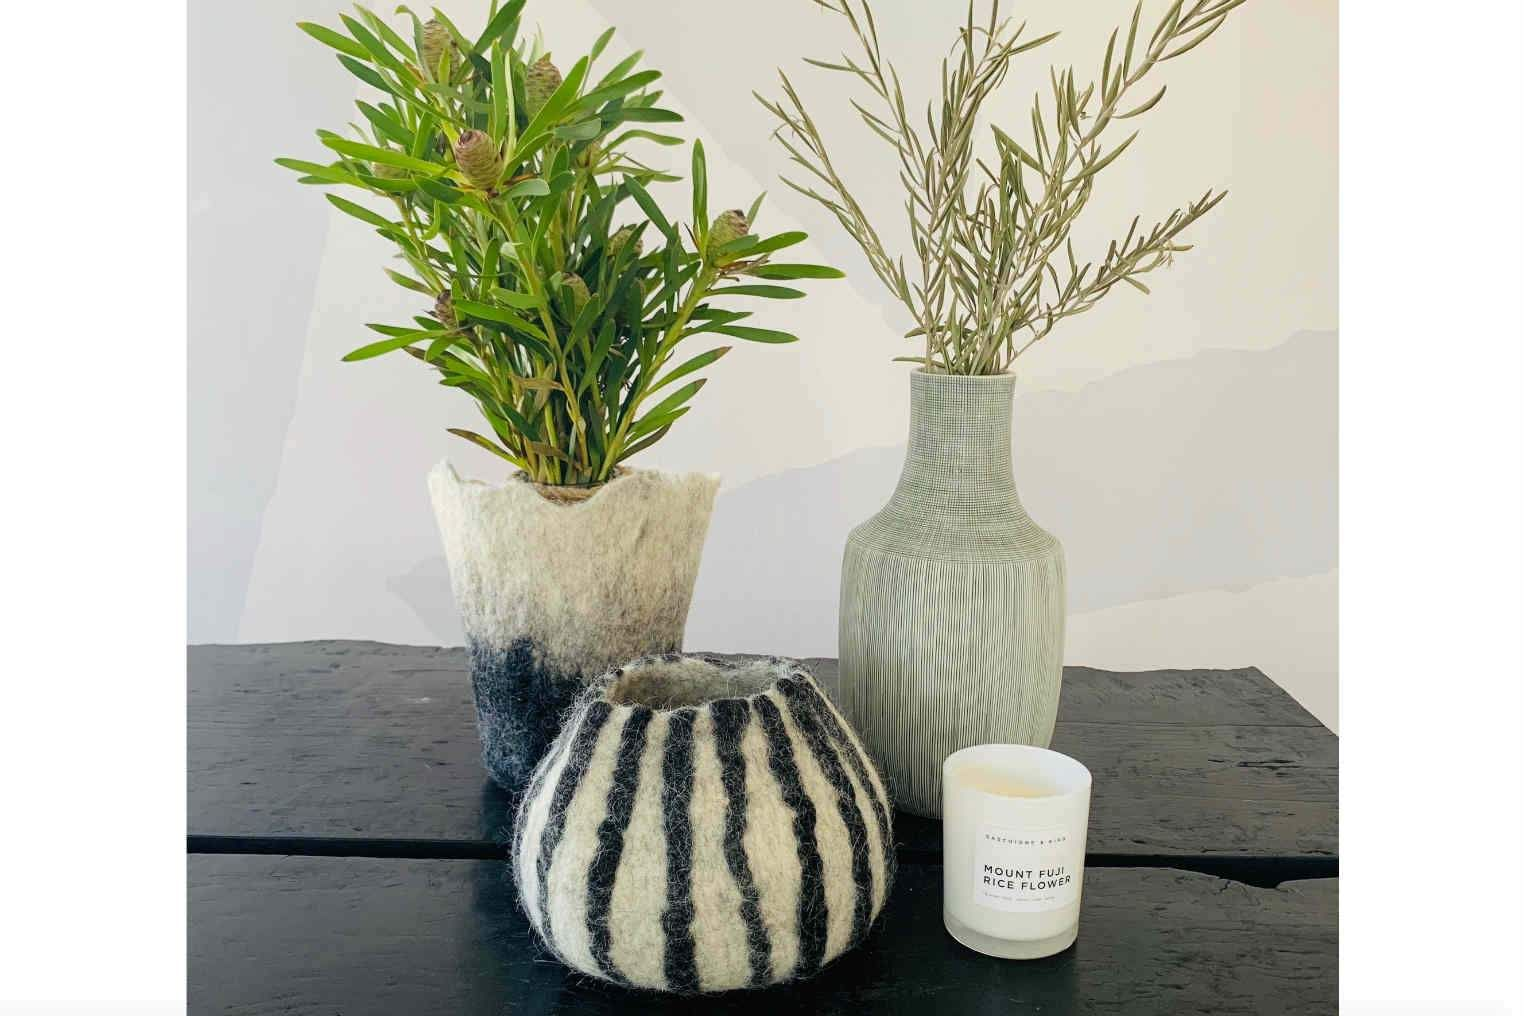 Felted Décor Vases - Kanju Interiors - Luxury African Design - these hand felted vases are made from karakul wool so they are luxurious and durable. Perfect gift to add some warmth, texture, style, and color to anyone's home. Each unique vase comes in a variety of sizes and colors and are great gifts for anyone who enjoys a unique, fun touch of style. Visit our Website for more info.  #giftideas #africandecor #easygift